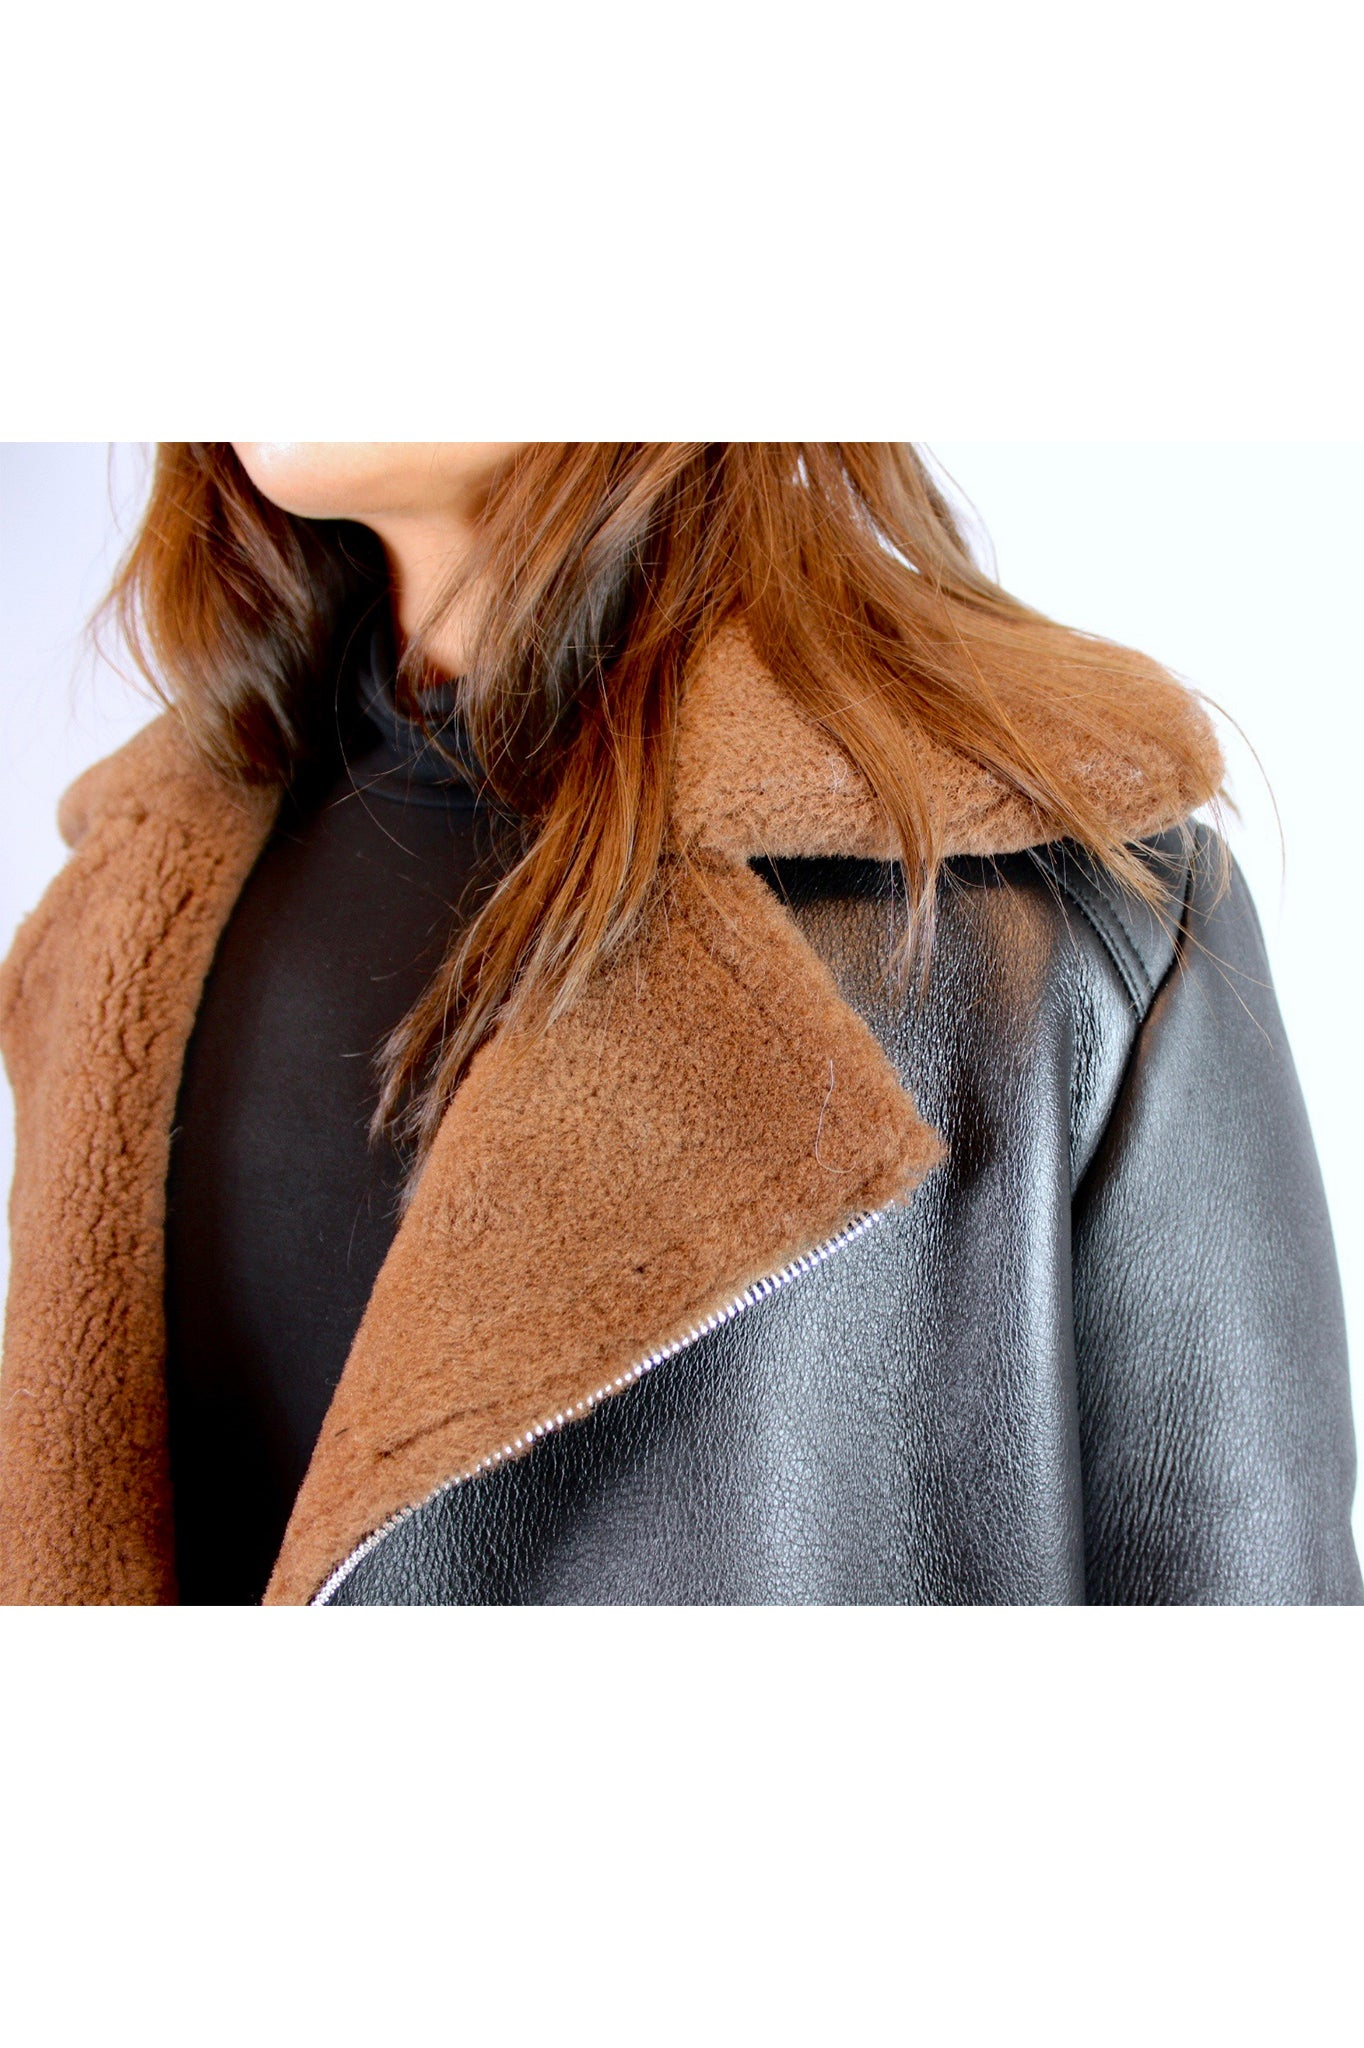 Rudsak Black Leather Jacket with Brown Shearling Trimming